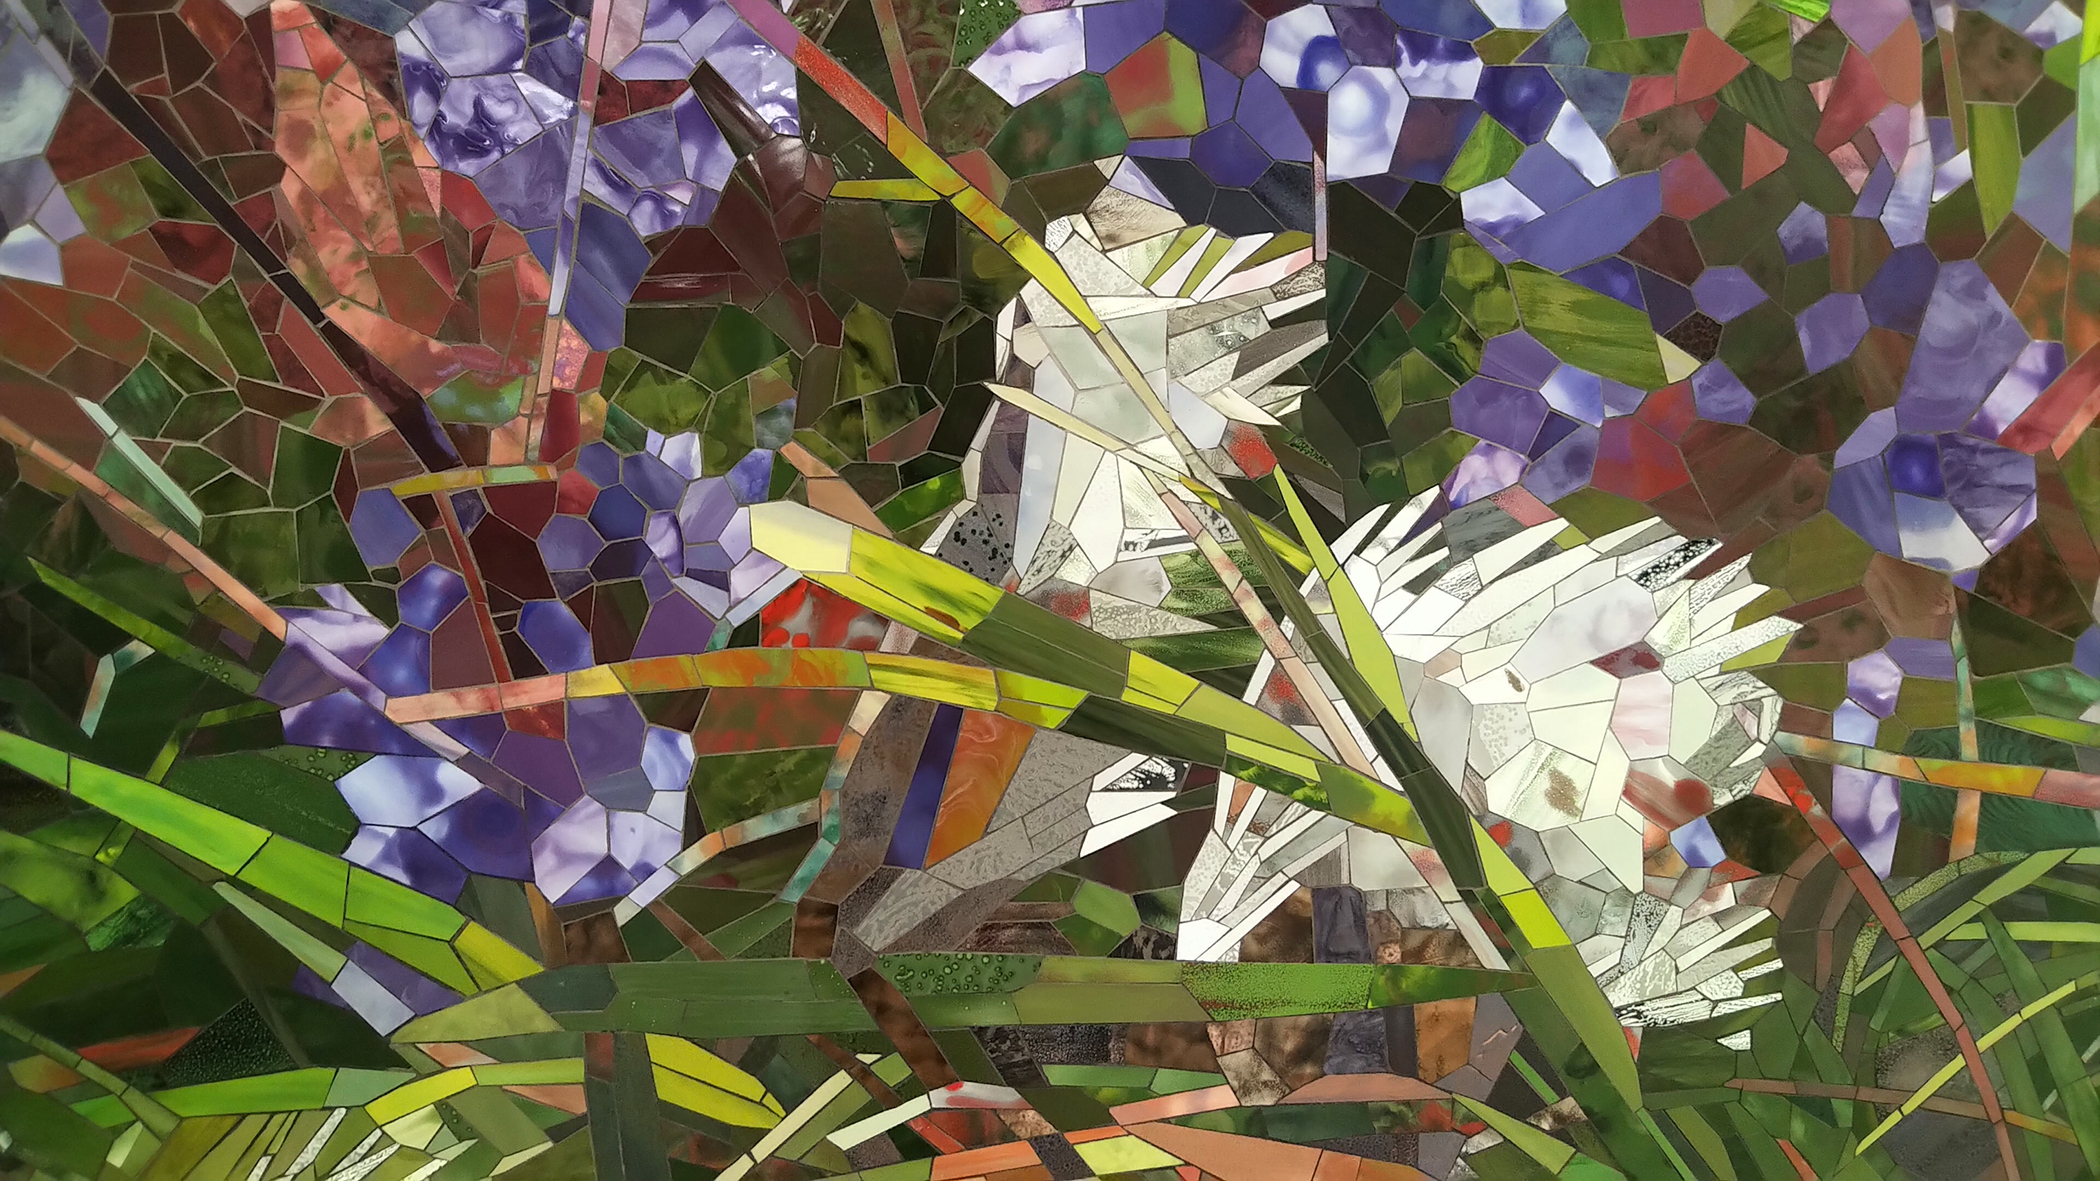 Milkweed Verbena detail 2 2020 ceramic mosaic 8x14ft by contemporary Canadian Artist Katharine Harvey